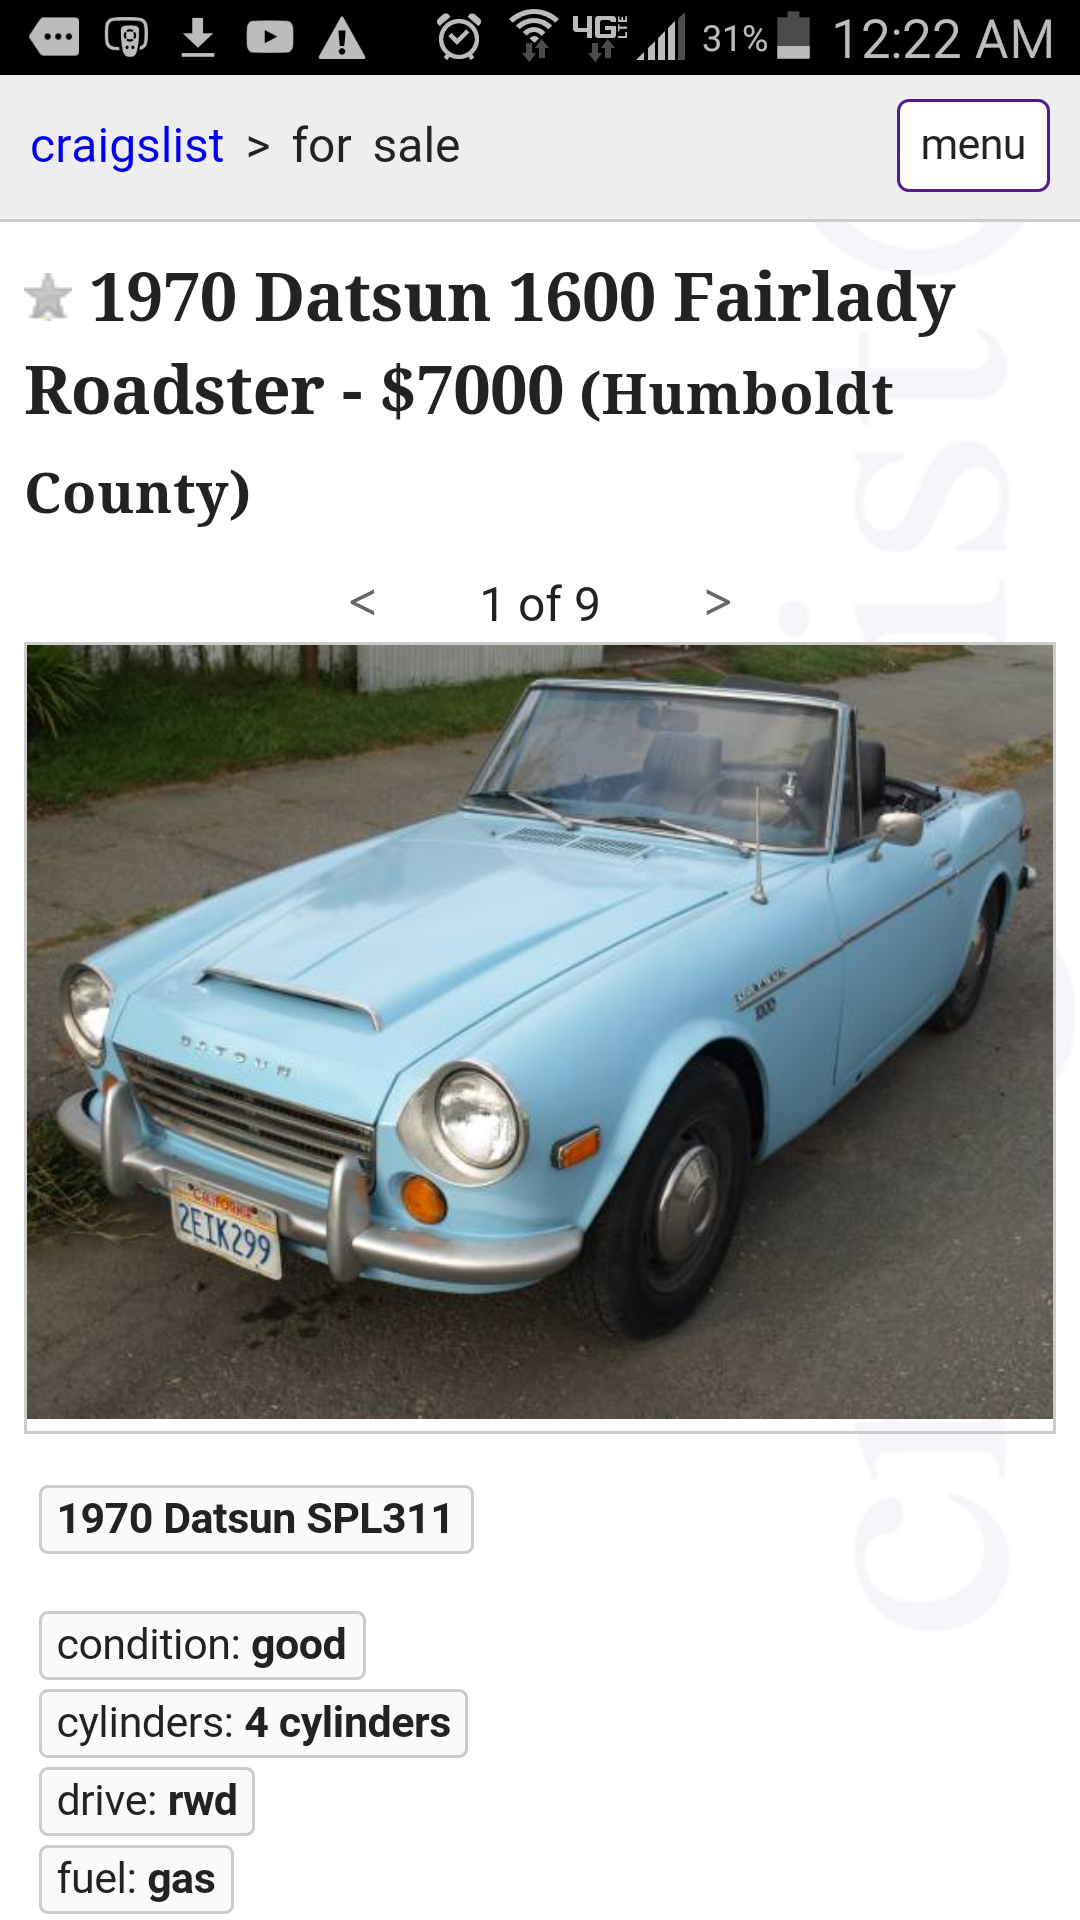 I want to see what fun cars yall can find on craigslist for 8 grand